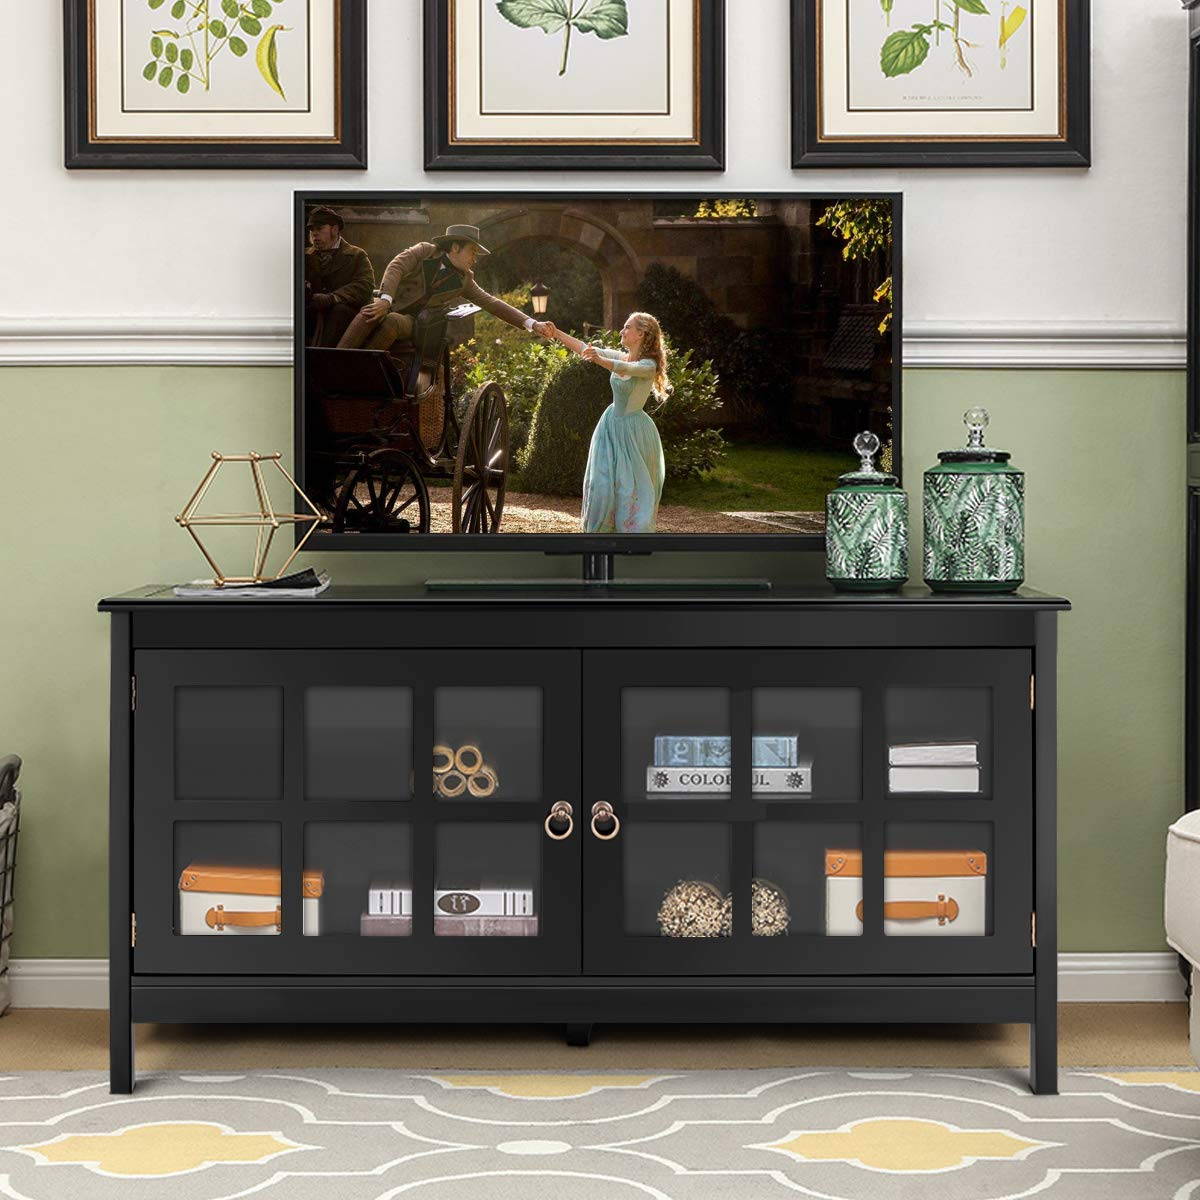 Tangkula TV Stand Modern Wood Large Wide Entertainment Center for TV up to 50'', Living Room Media Console Cabinet Stand with 2 Doors, Black by Tangkula